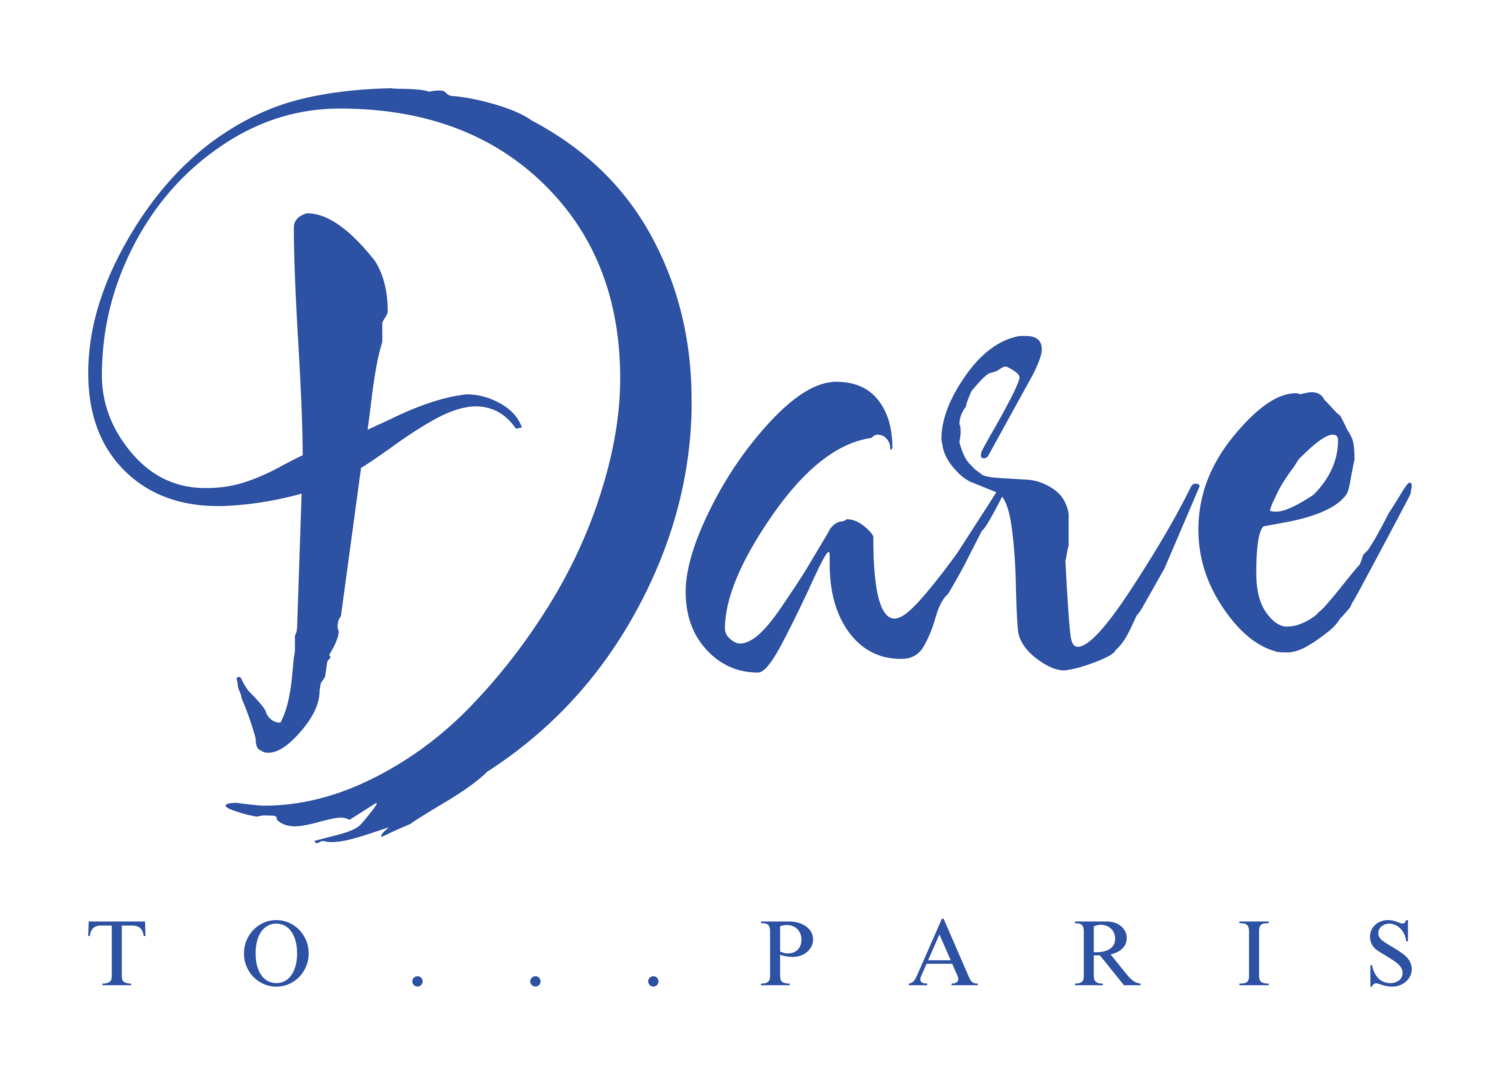 Dare to...PARIS